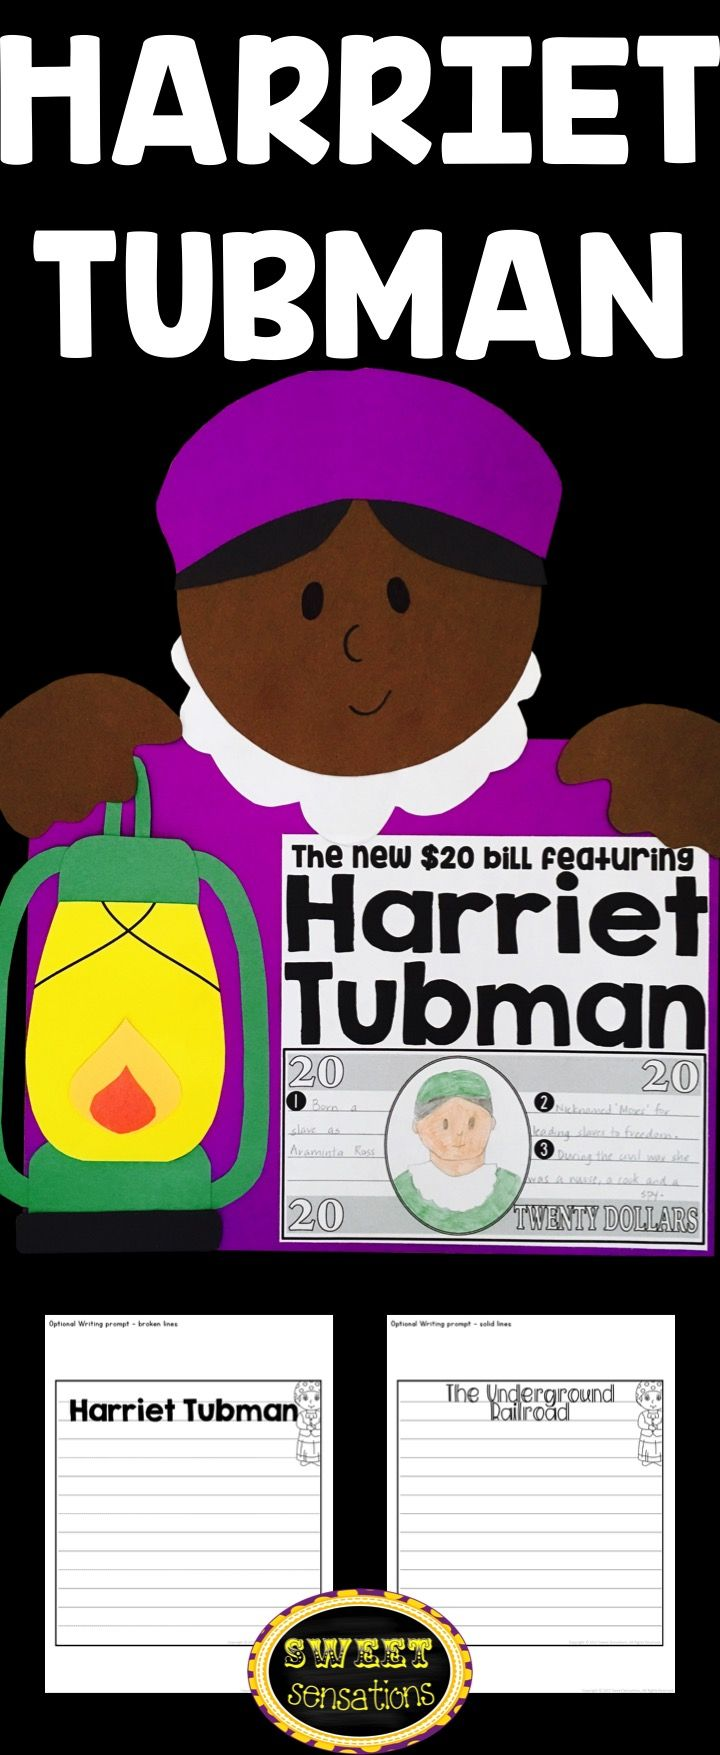 Harriet Tubman craft activity for Black History Month or Women's History Month.  Students can write about Harriet Tubman, the Underground Railroad or design the new $20 bill.